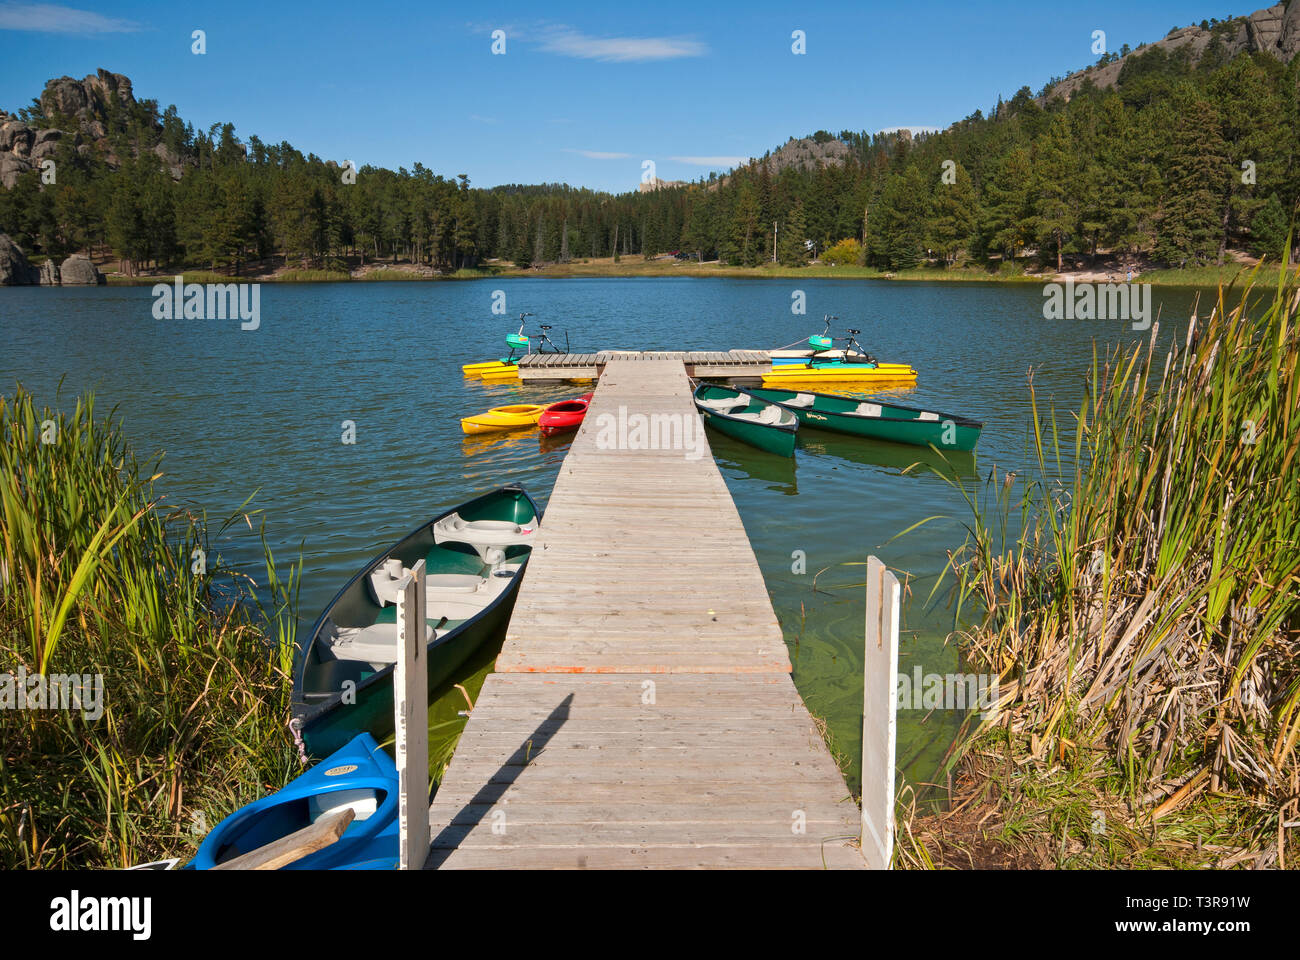 Wooden pier with rental canoes and kayaks in Sylvan Lake, Custer State Park, South Dakota, USA - Stock Image